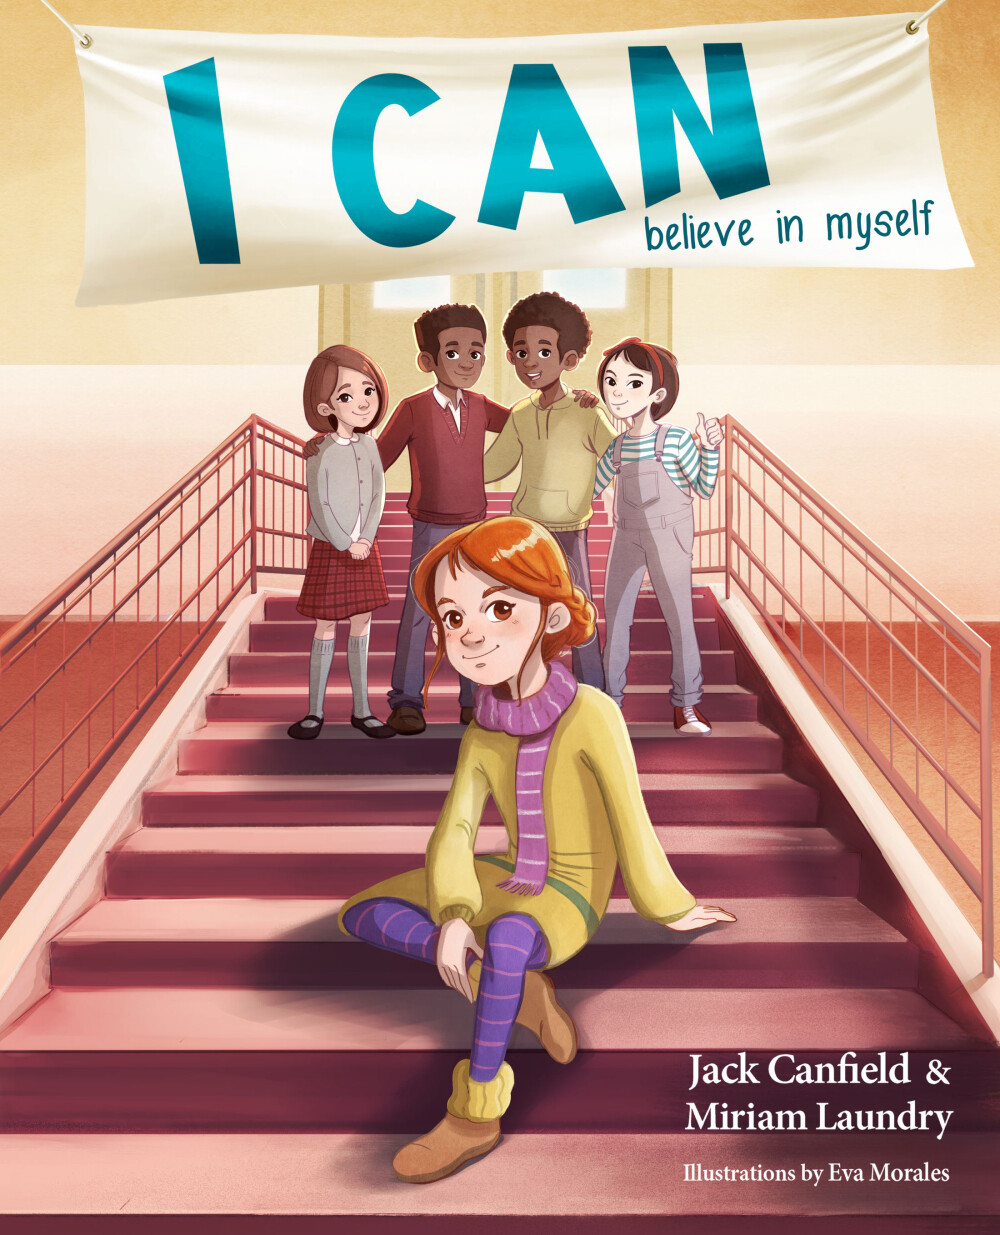 I CAN Believe in Myself Author: Miriam Laundry and Jack Canfield Illustrator: Eva Morales Publisher: Health Communications - 2021 Languaje: English ISBN-10 : 075732388X ISBN-13 : 978-0757323881